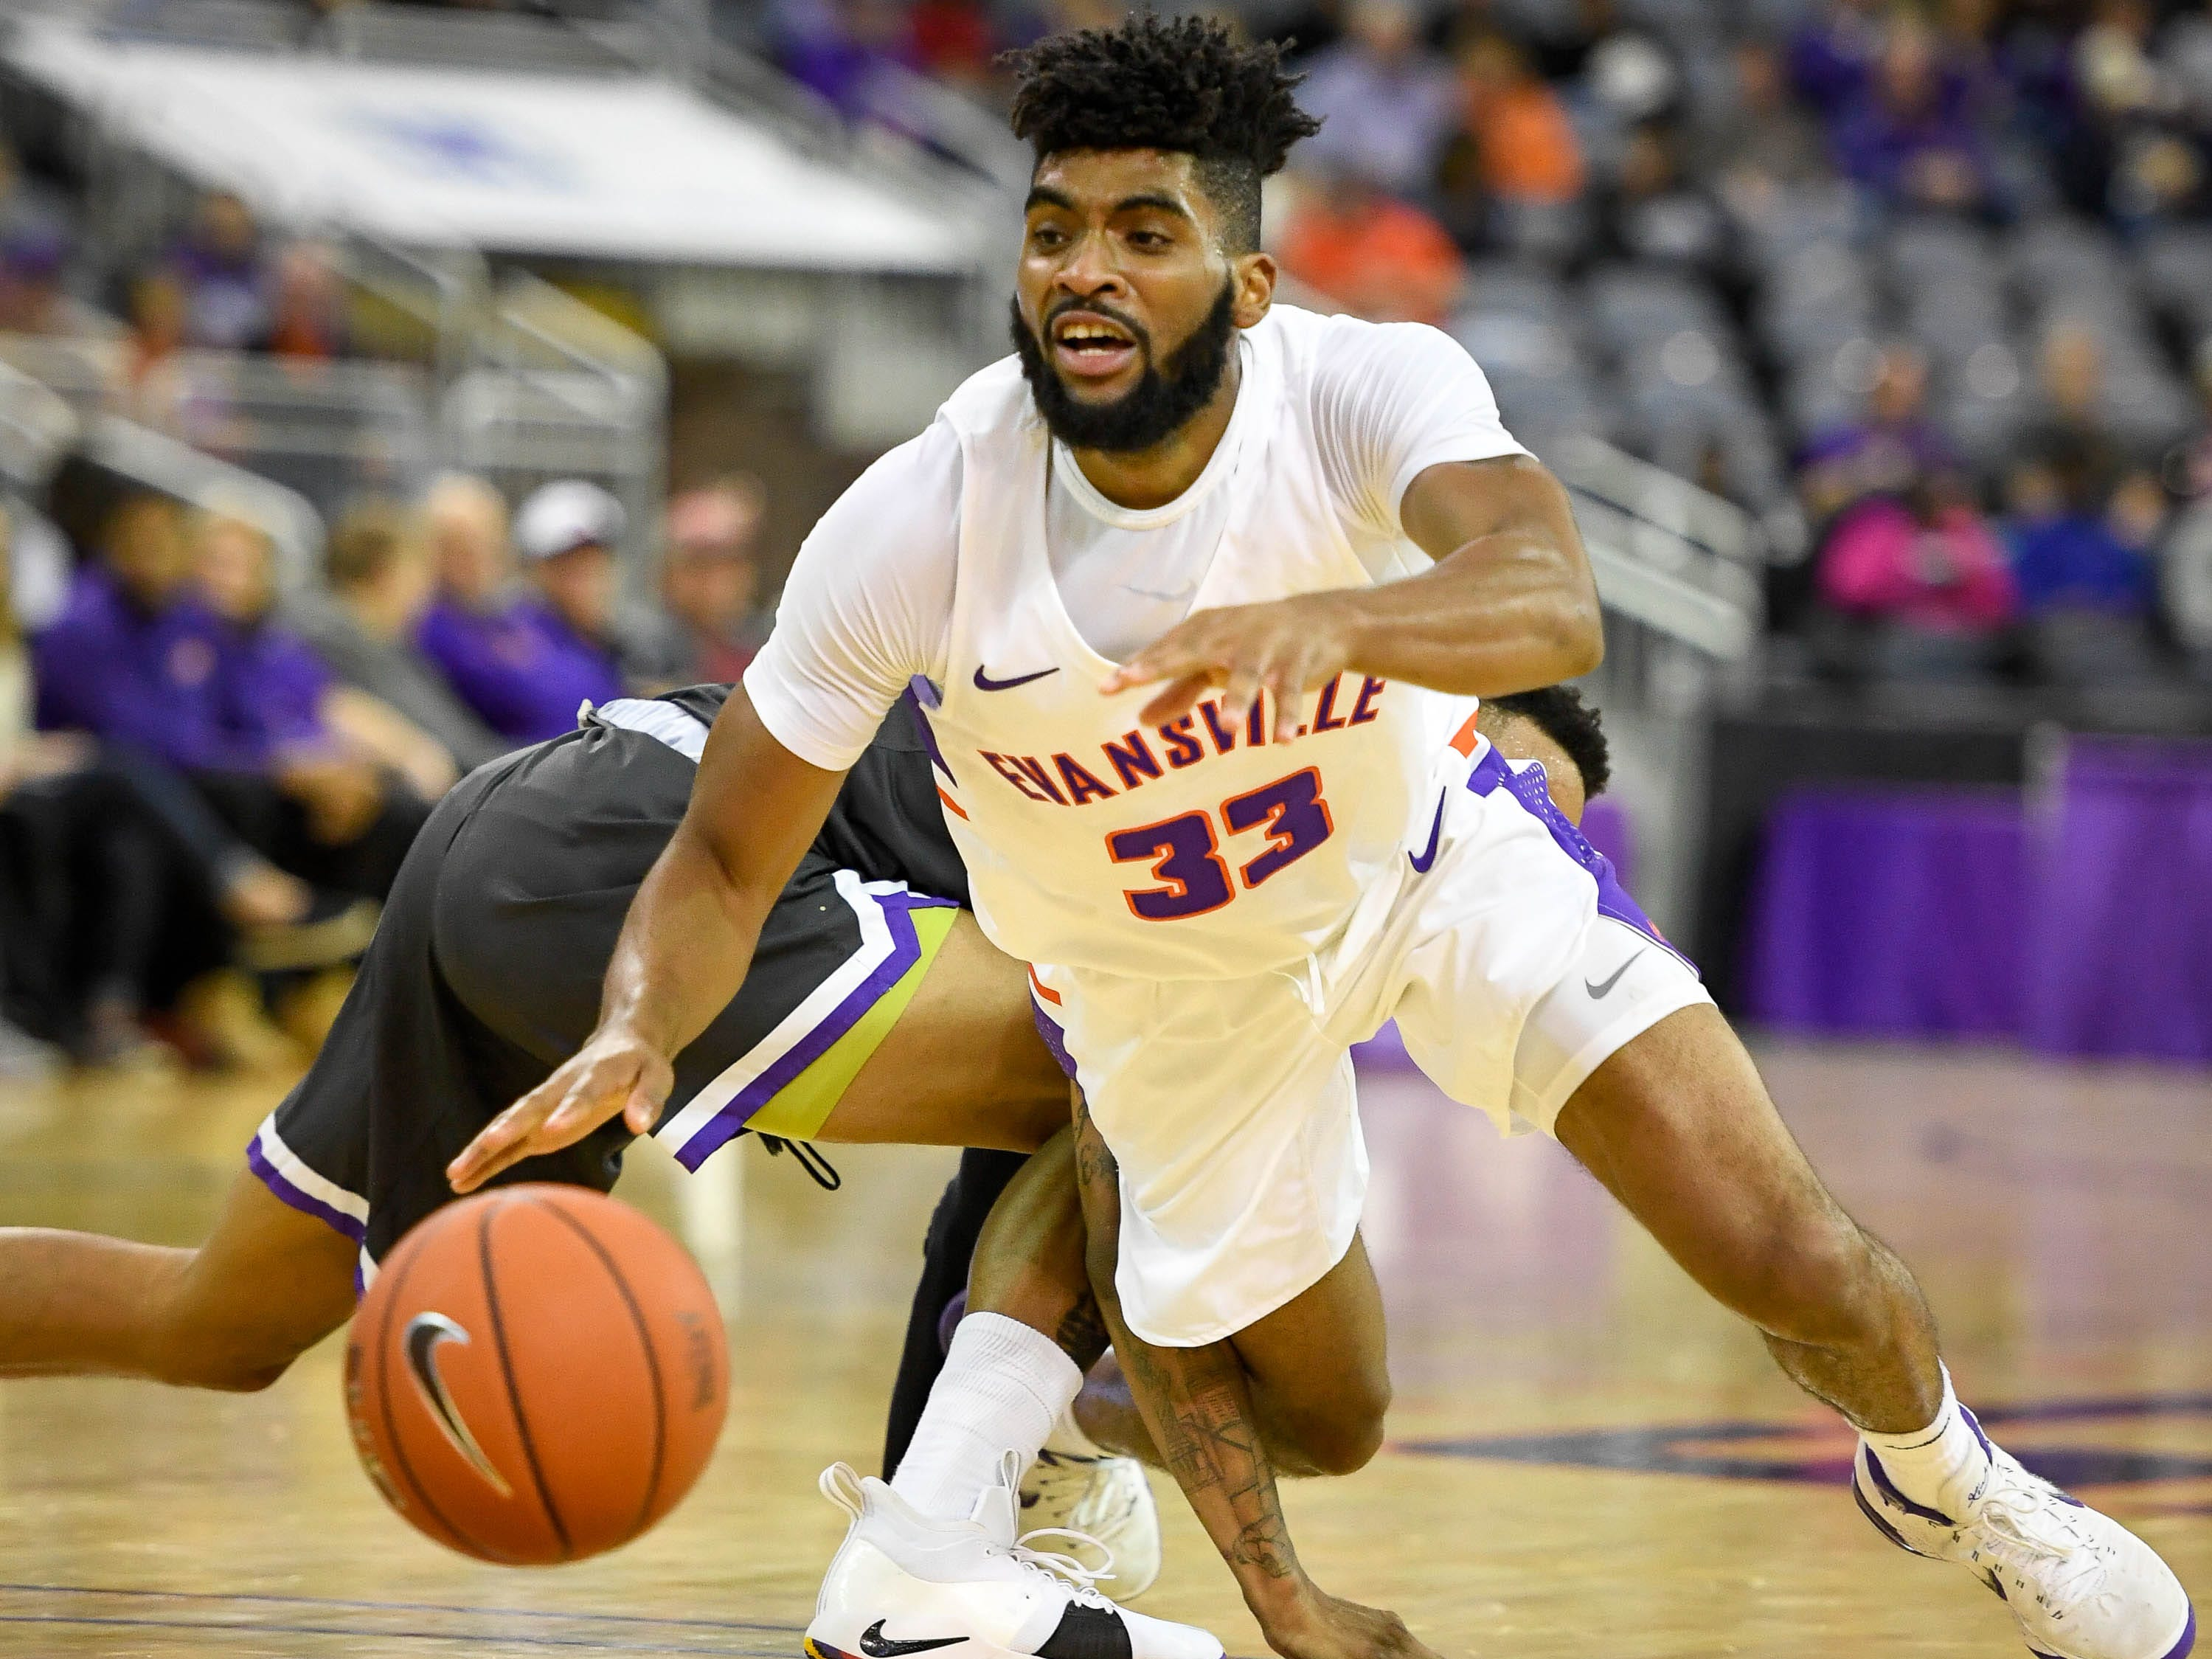 University of Evansville's K.J. Riley (33) gets tangled up with New Mexico Highlands' Gerad Davis (3) as the University of Evansville Purple Aces play the New Mexico Highlands Cowboys in a exhibition game at the Ford Center Saturday, November 3, 2018.